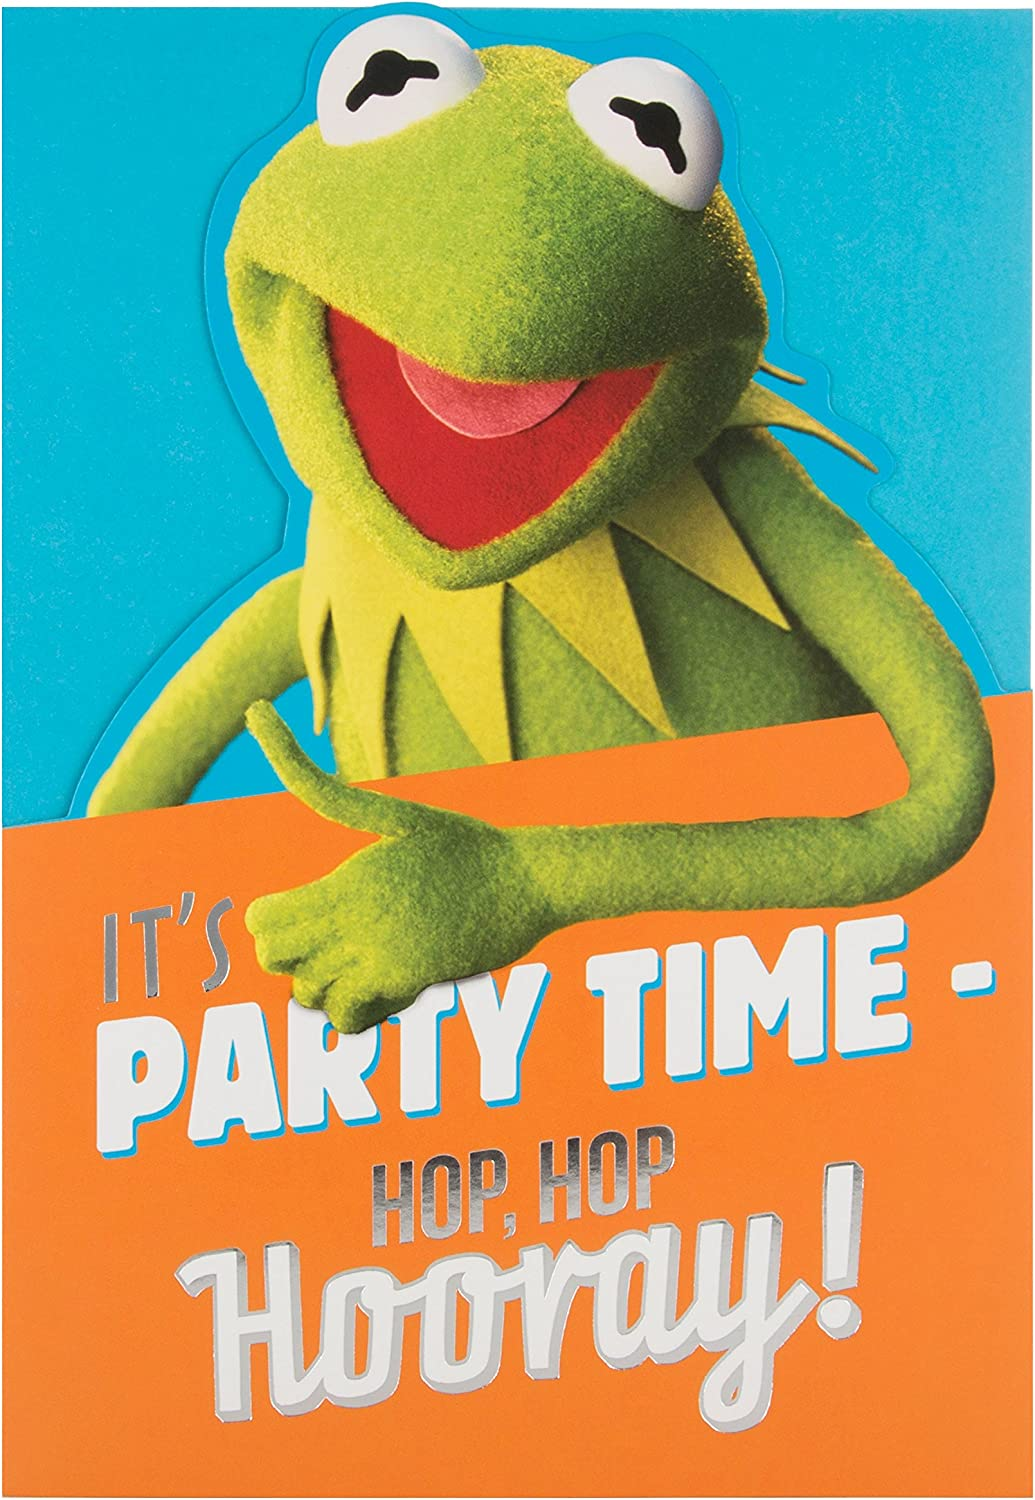 Funny Birthday Card Ideal Gift Card for Birthday The Muppets Birthday Card Animal Birthday Card Friend Disney Gifts